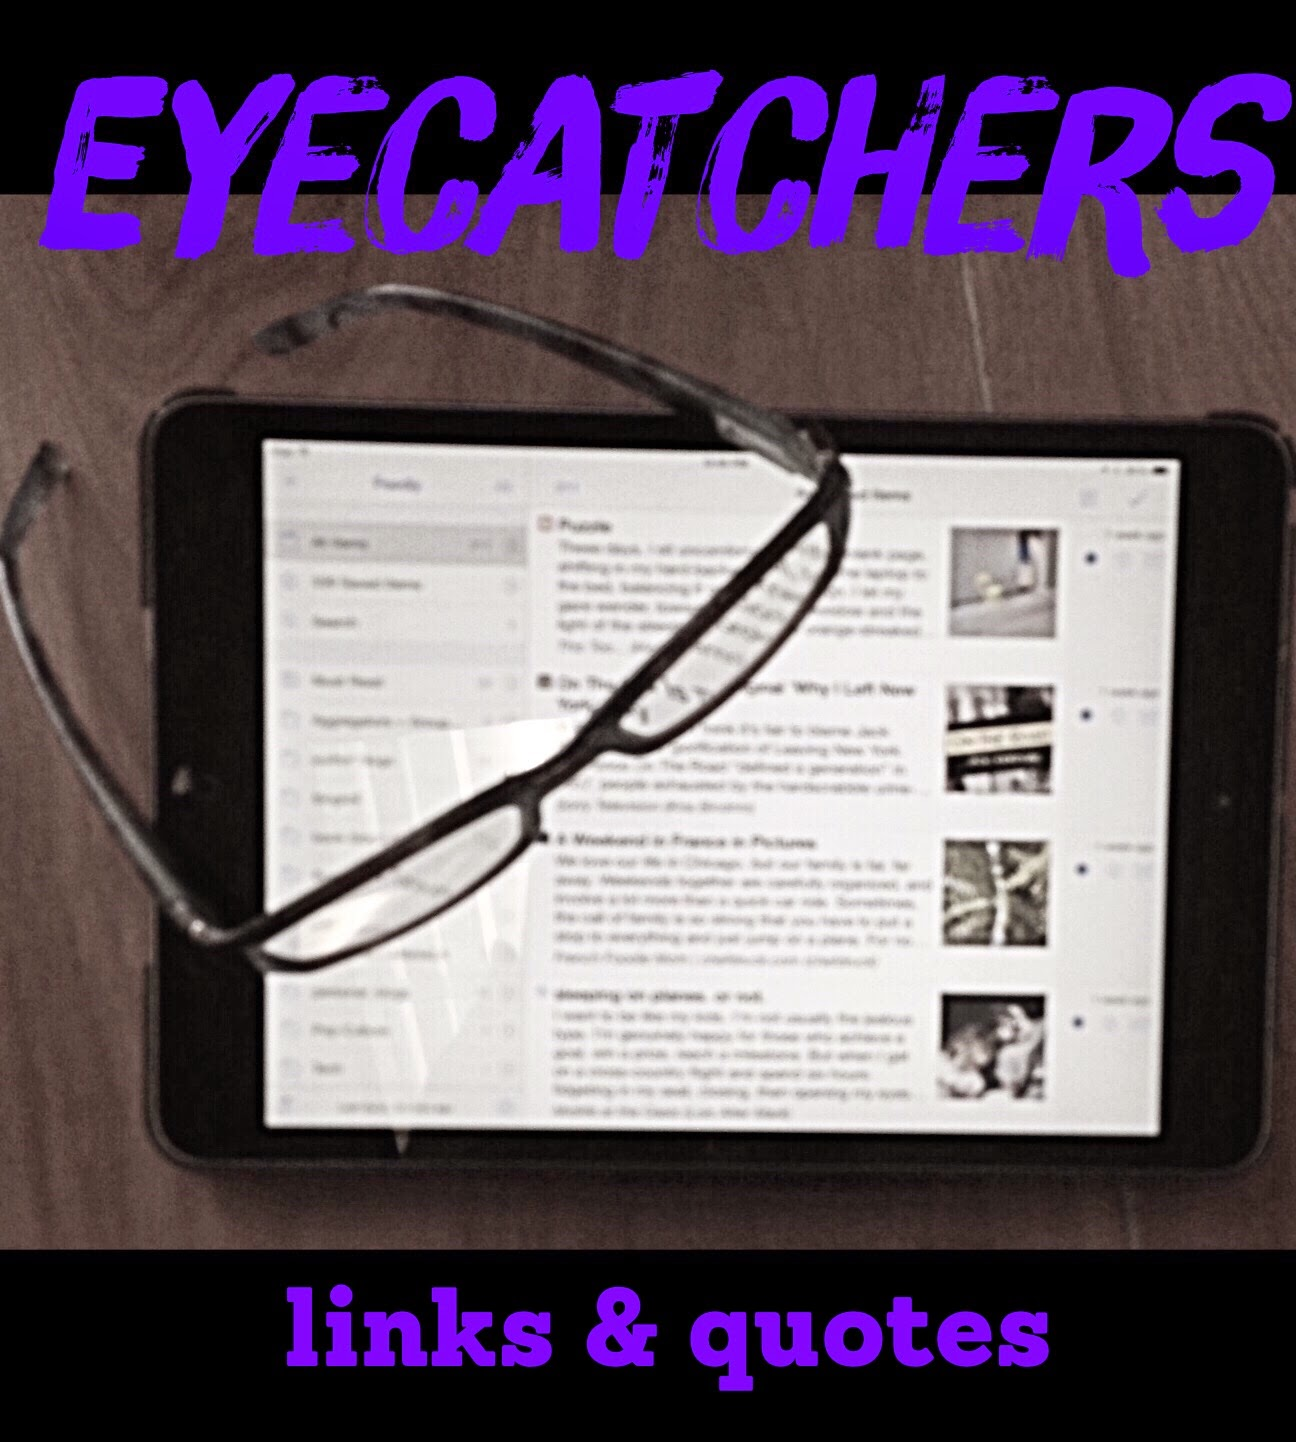 """Eyecatchers"" links & quotes roundup on The 3 Rs Blog"